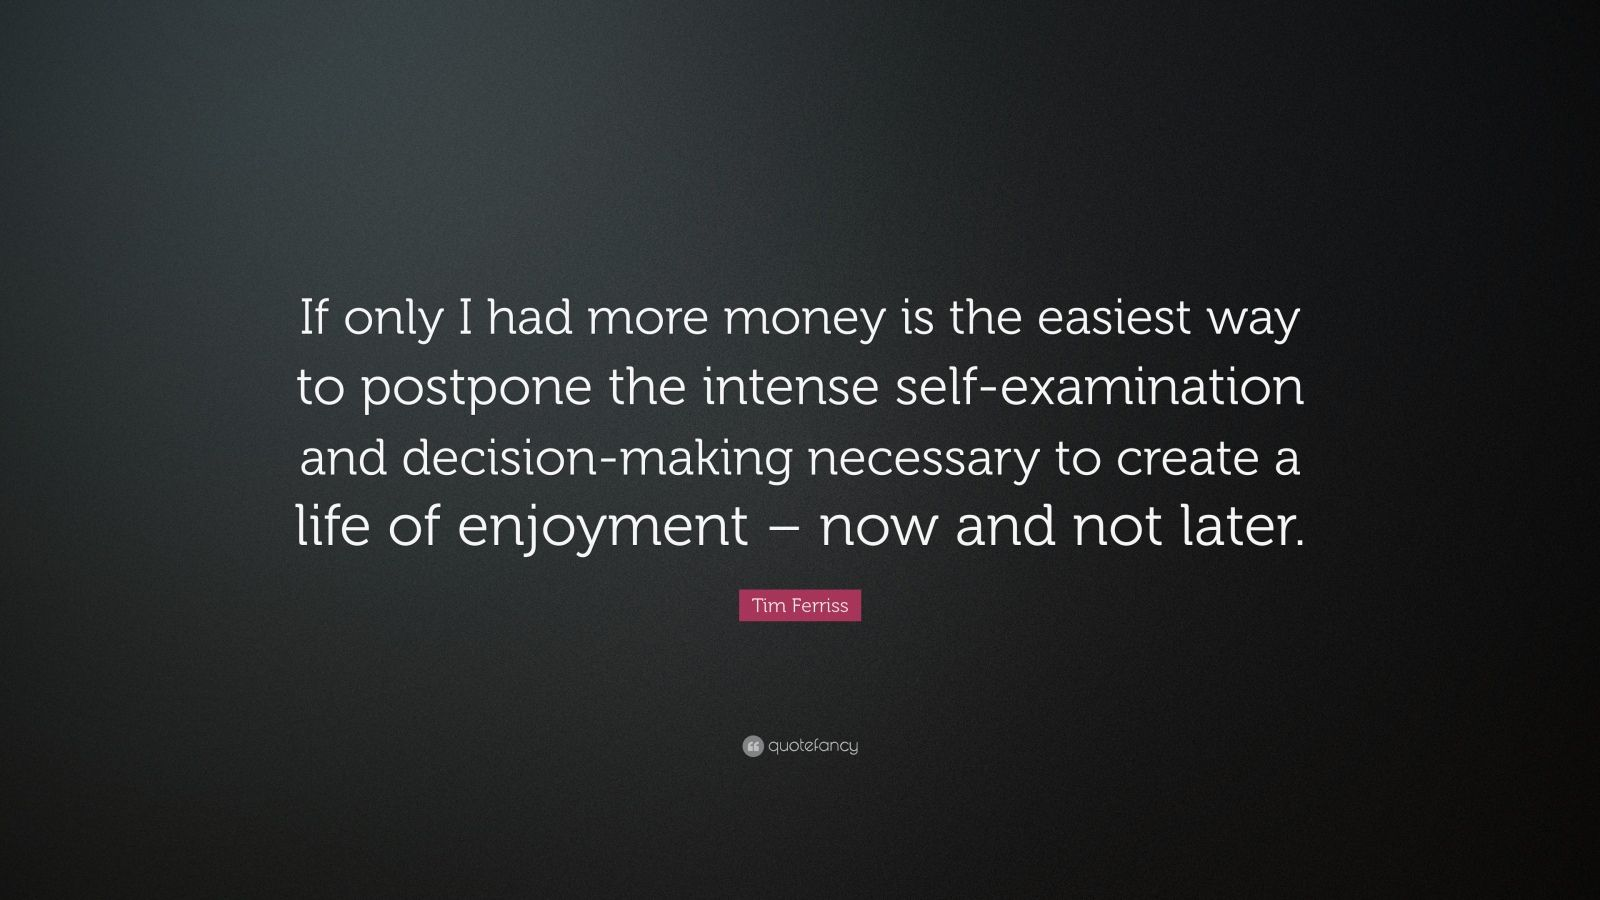 """Tim Ferriss Quote: """"If only I had more money is the easiest way to postpone the intense self-examination and decision-making necessary to create a life of enjoyment – now and not later."""""""